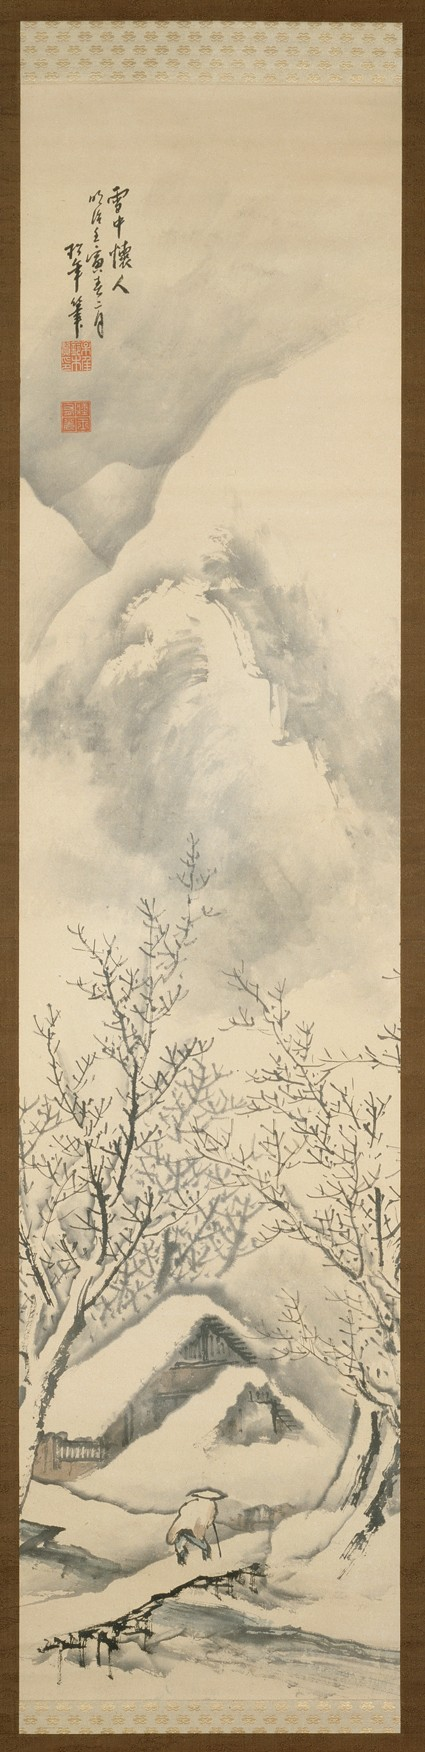 Snowscape depicting a man walking towards a hermitagefront, painting only